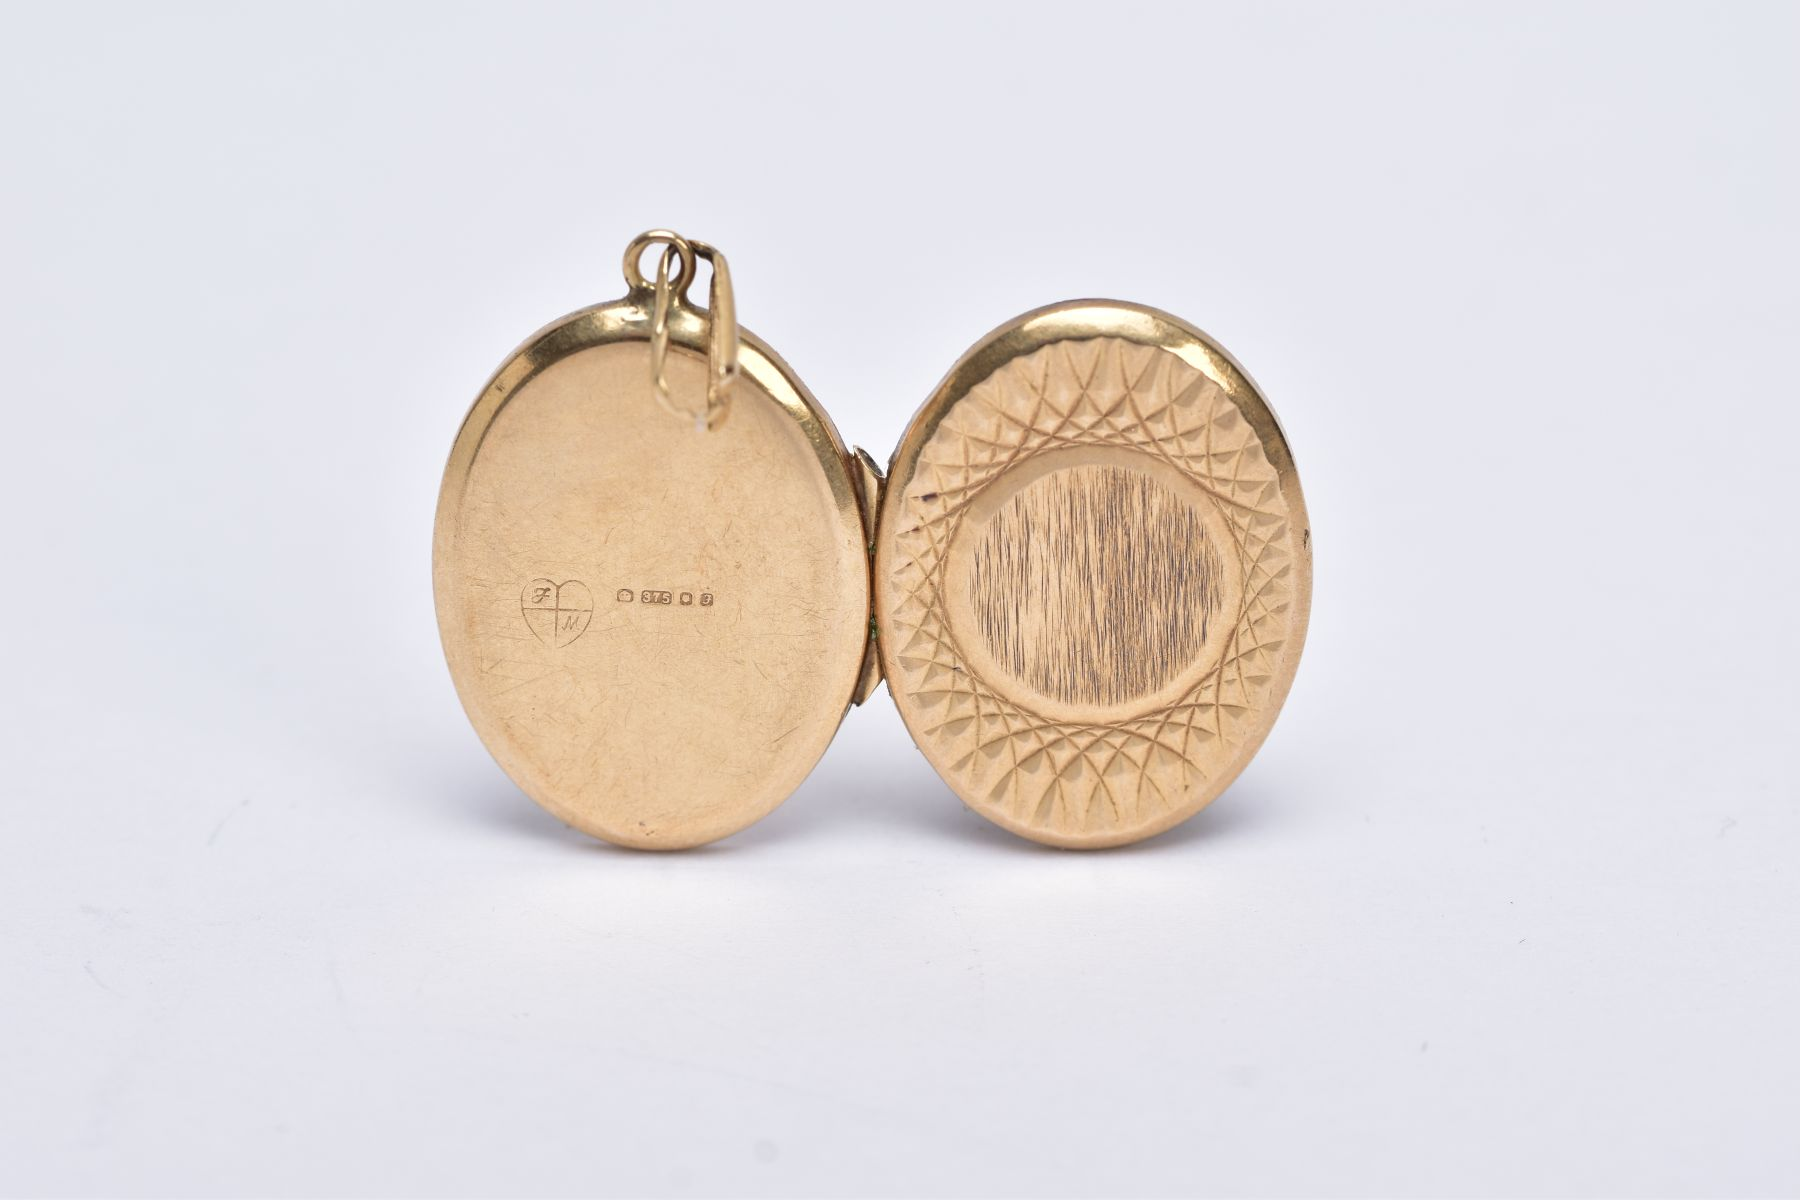 A 9CT GOLD OVAL LOCKET PENDANT, textured design with a vacant cartouche, fitted with a tapered